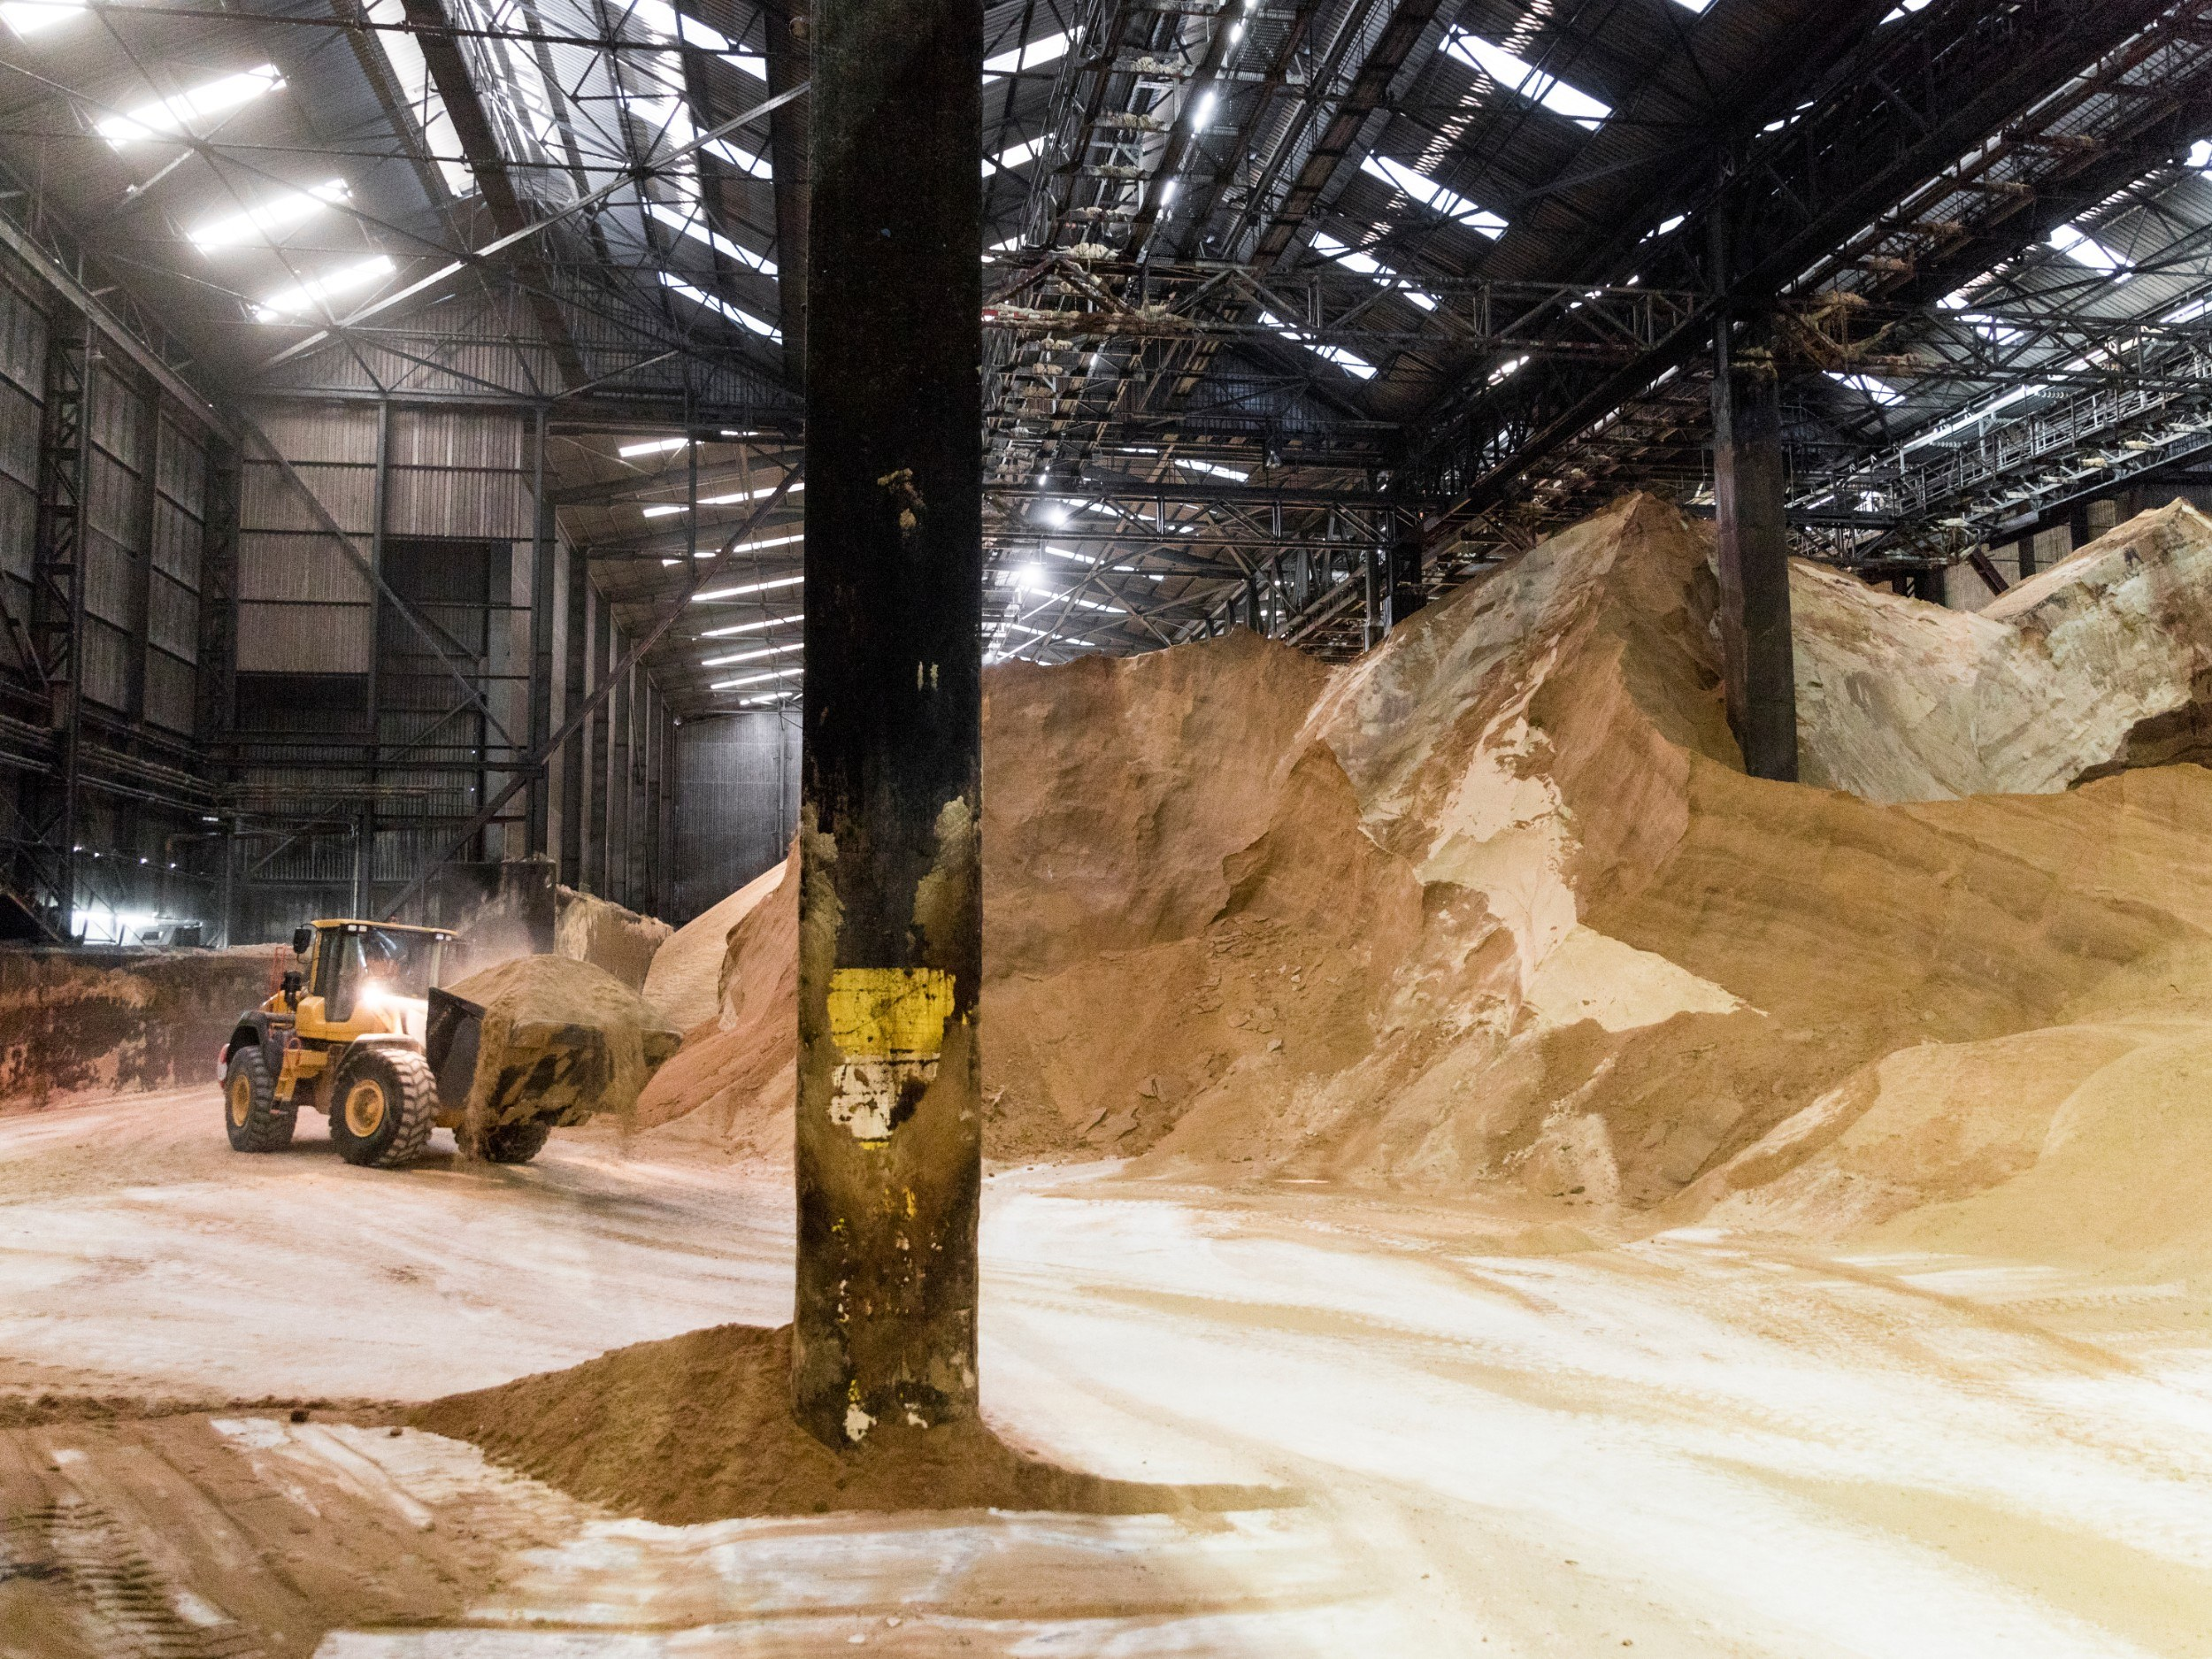 Mountains of raw sugar in a warehouse. A truck is driving along, scooping up sugar. It is around 20% as high as the sugar mountains.